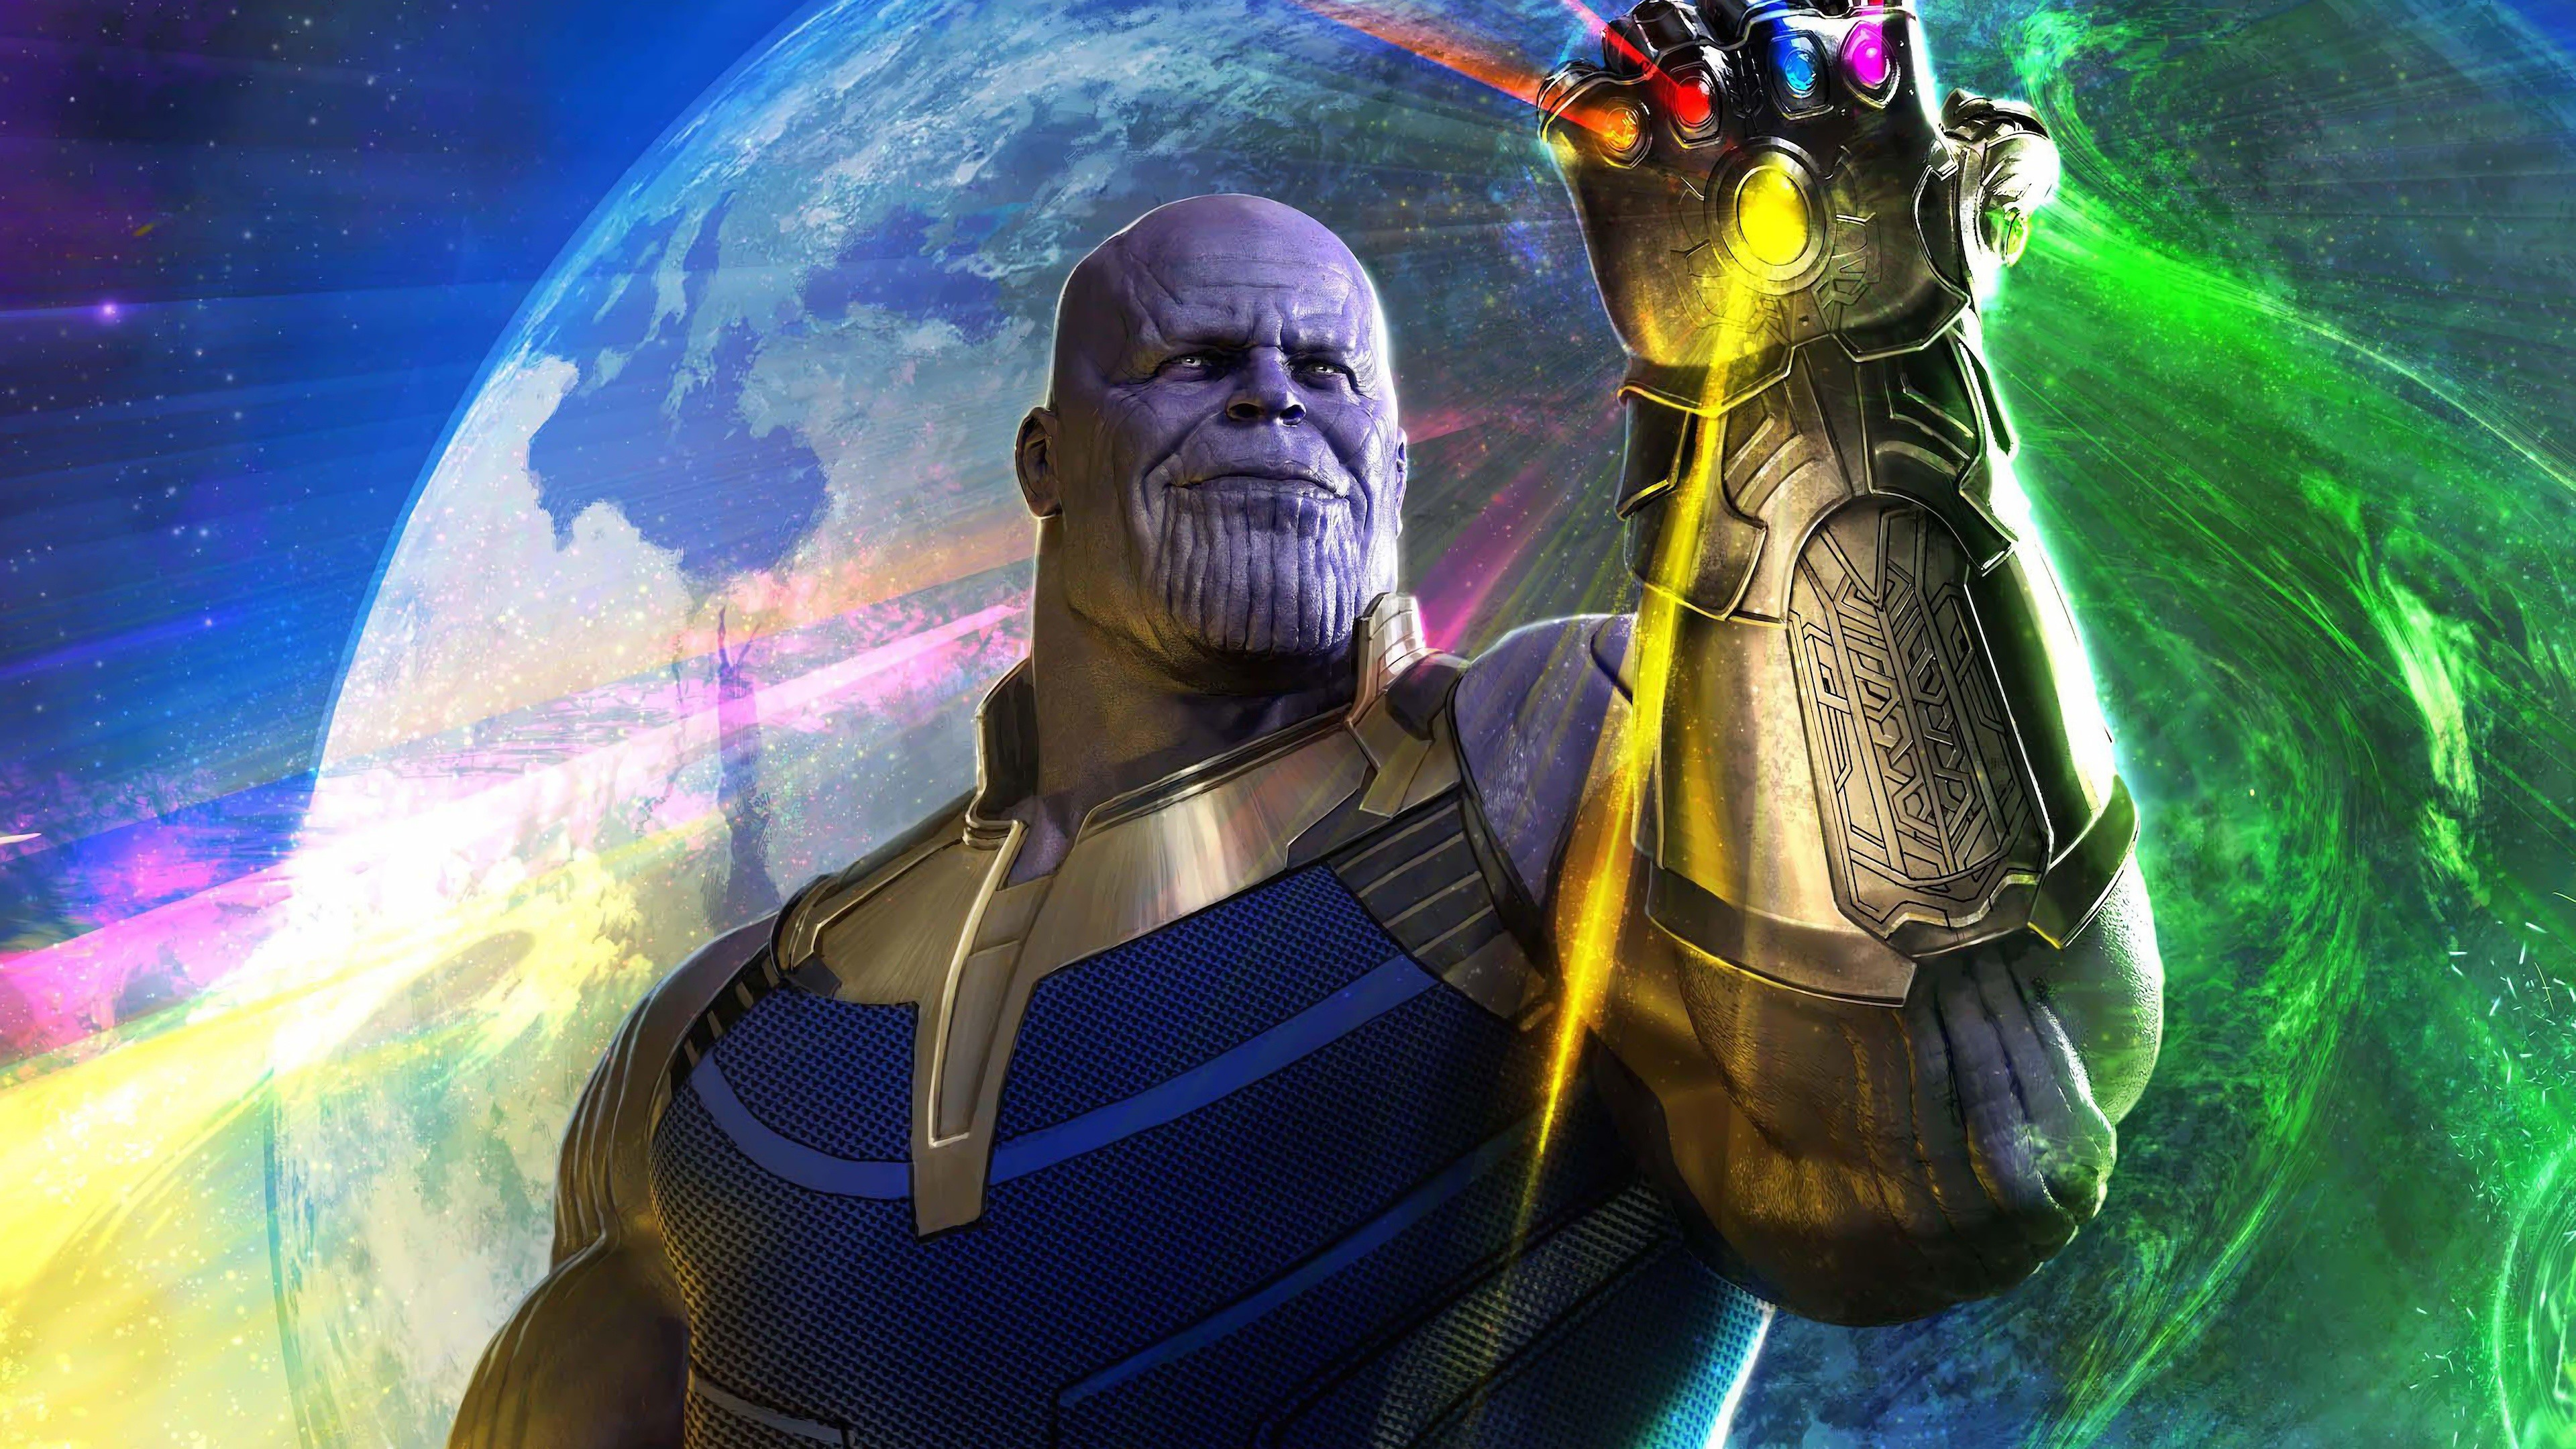 Wallpaper Thanos Avengers Infinity War 3840x2160 Uhd 4k Picture Image